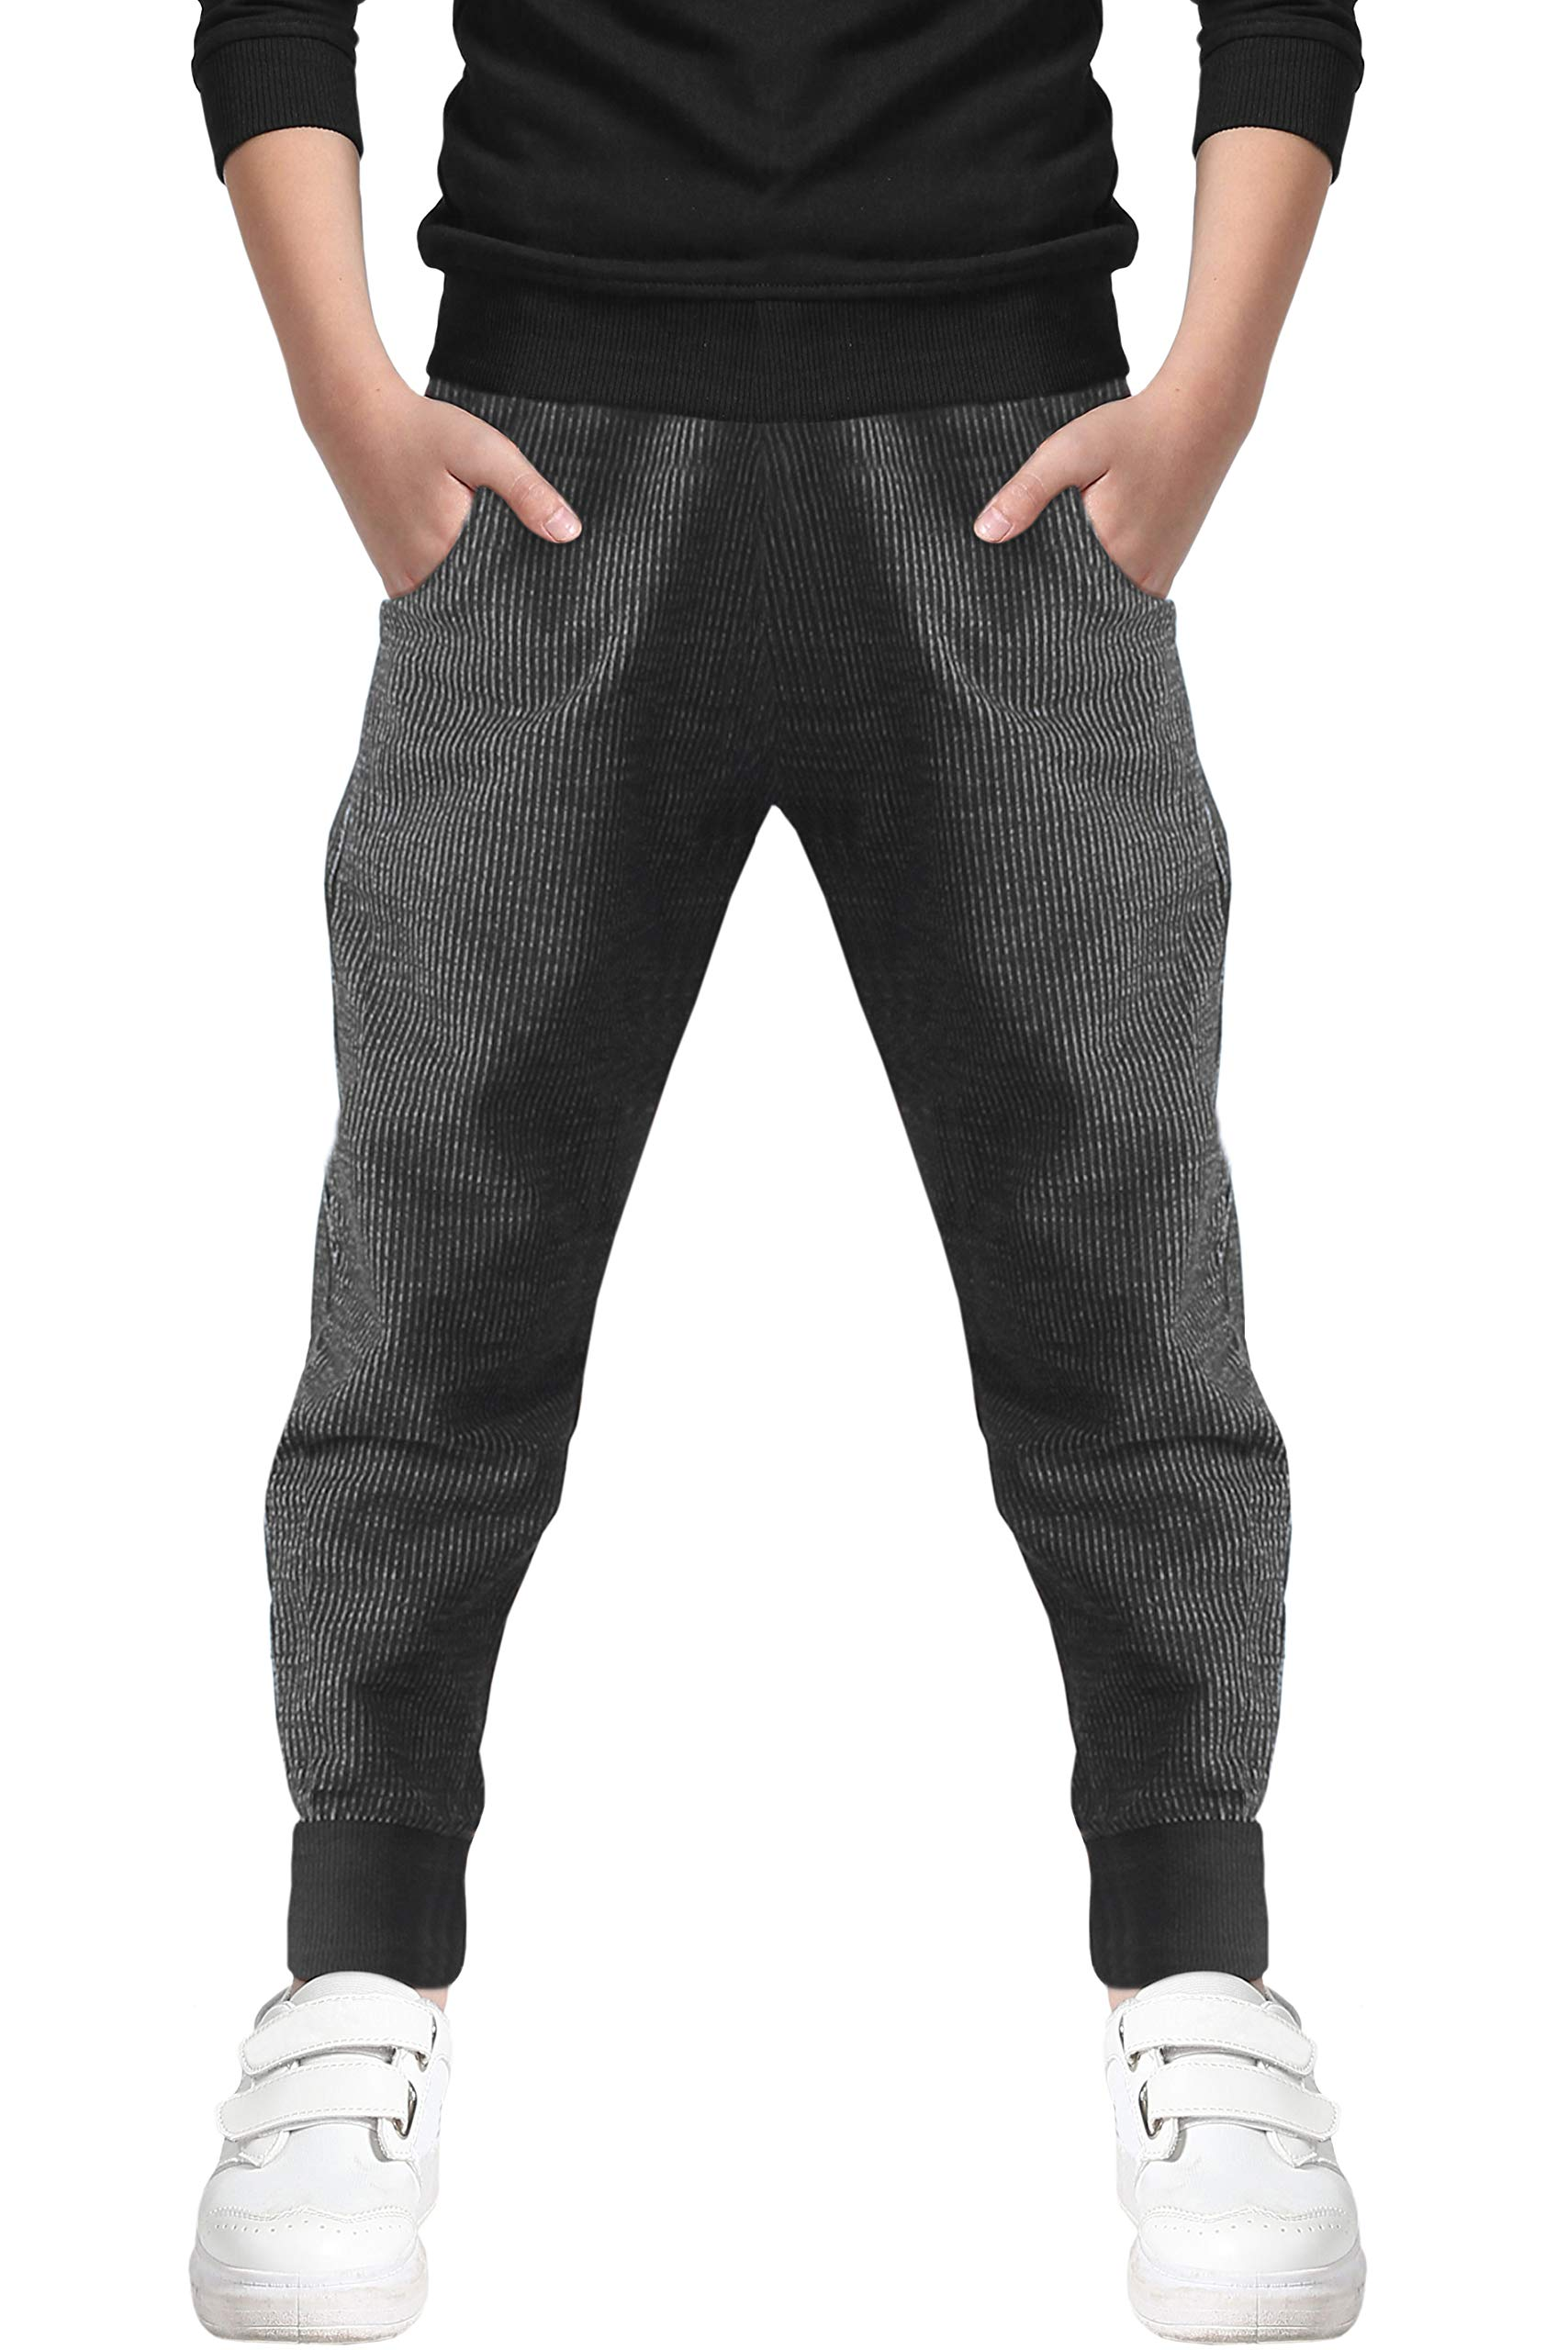 Boy's Pull On Jogger Active Sports Sweat Pants with Pockets, Black, Size 11-12 Years = Tag 160